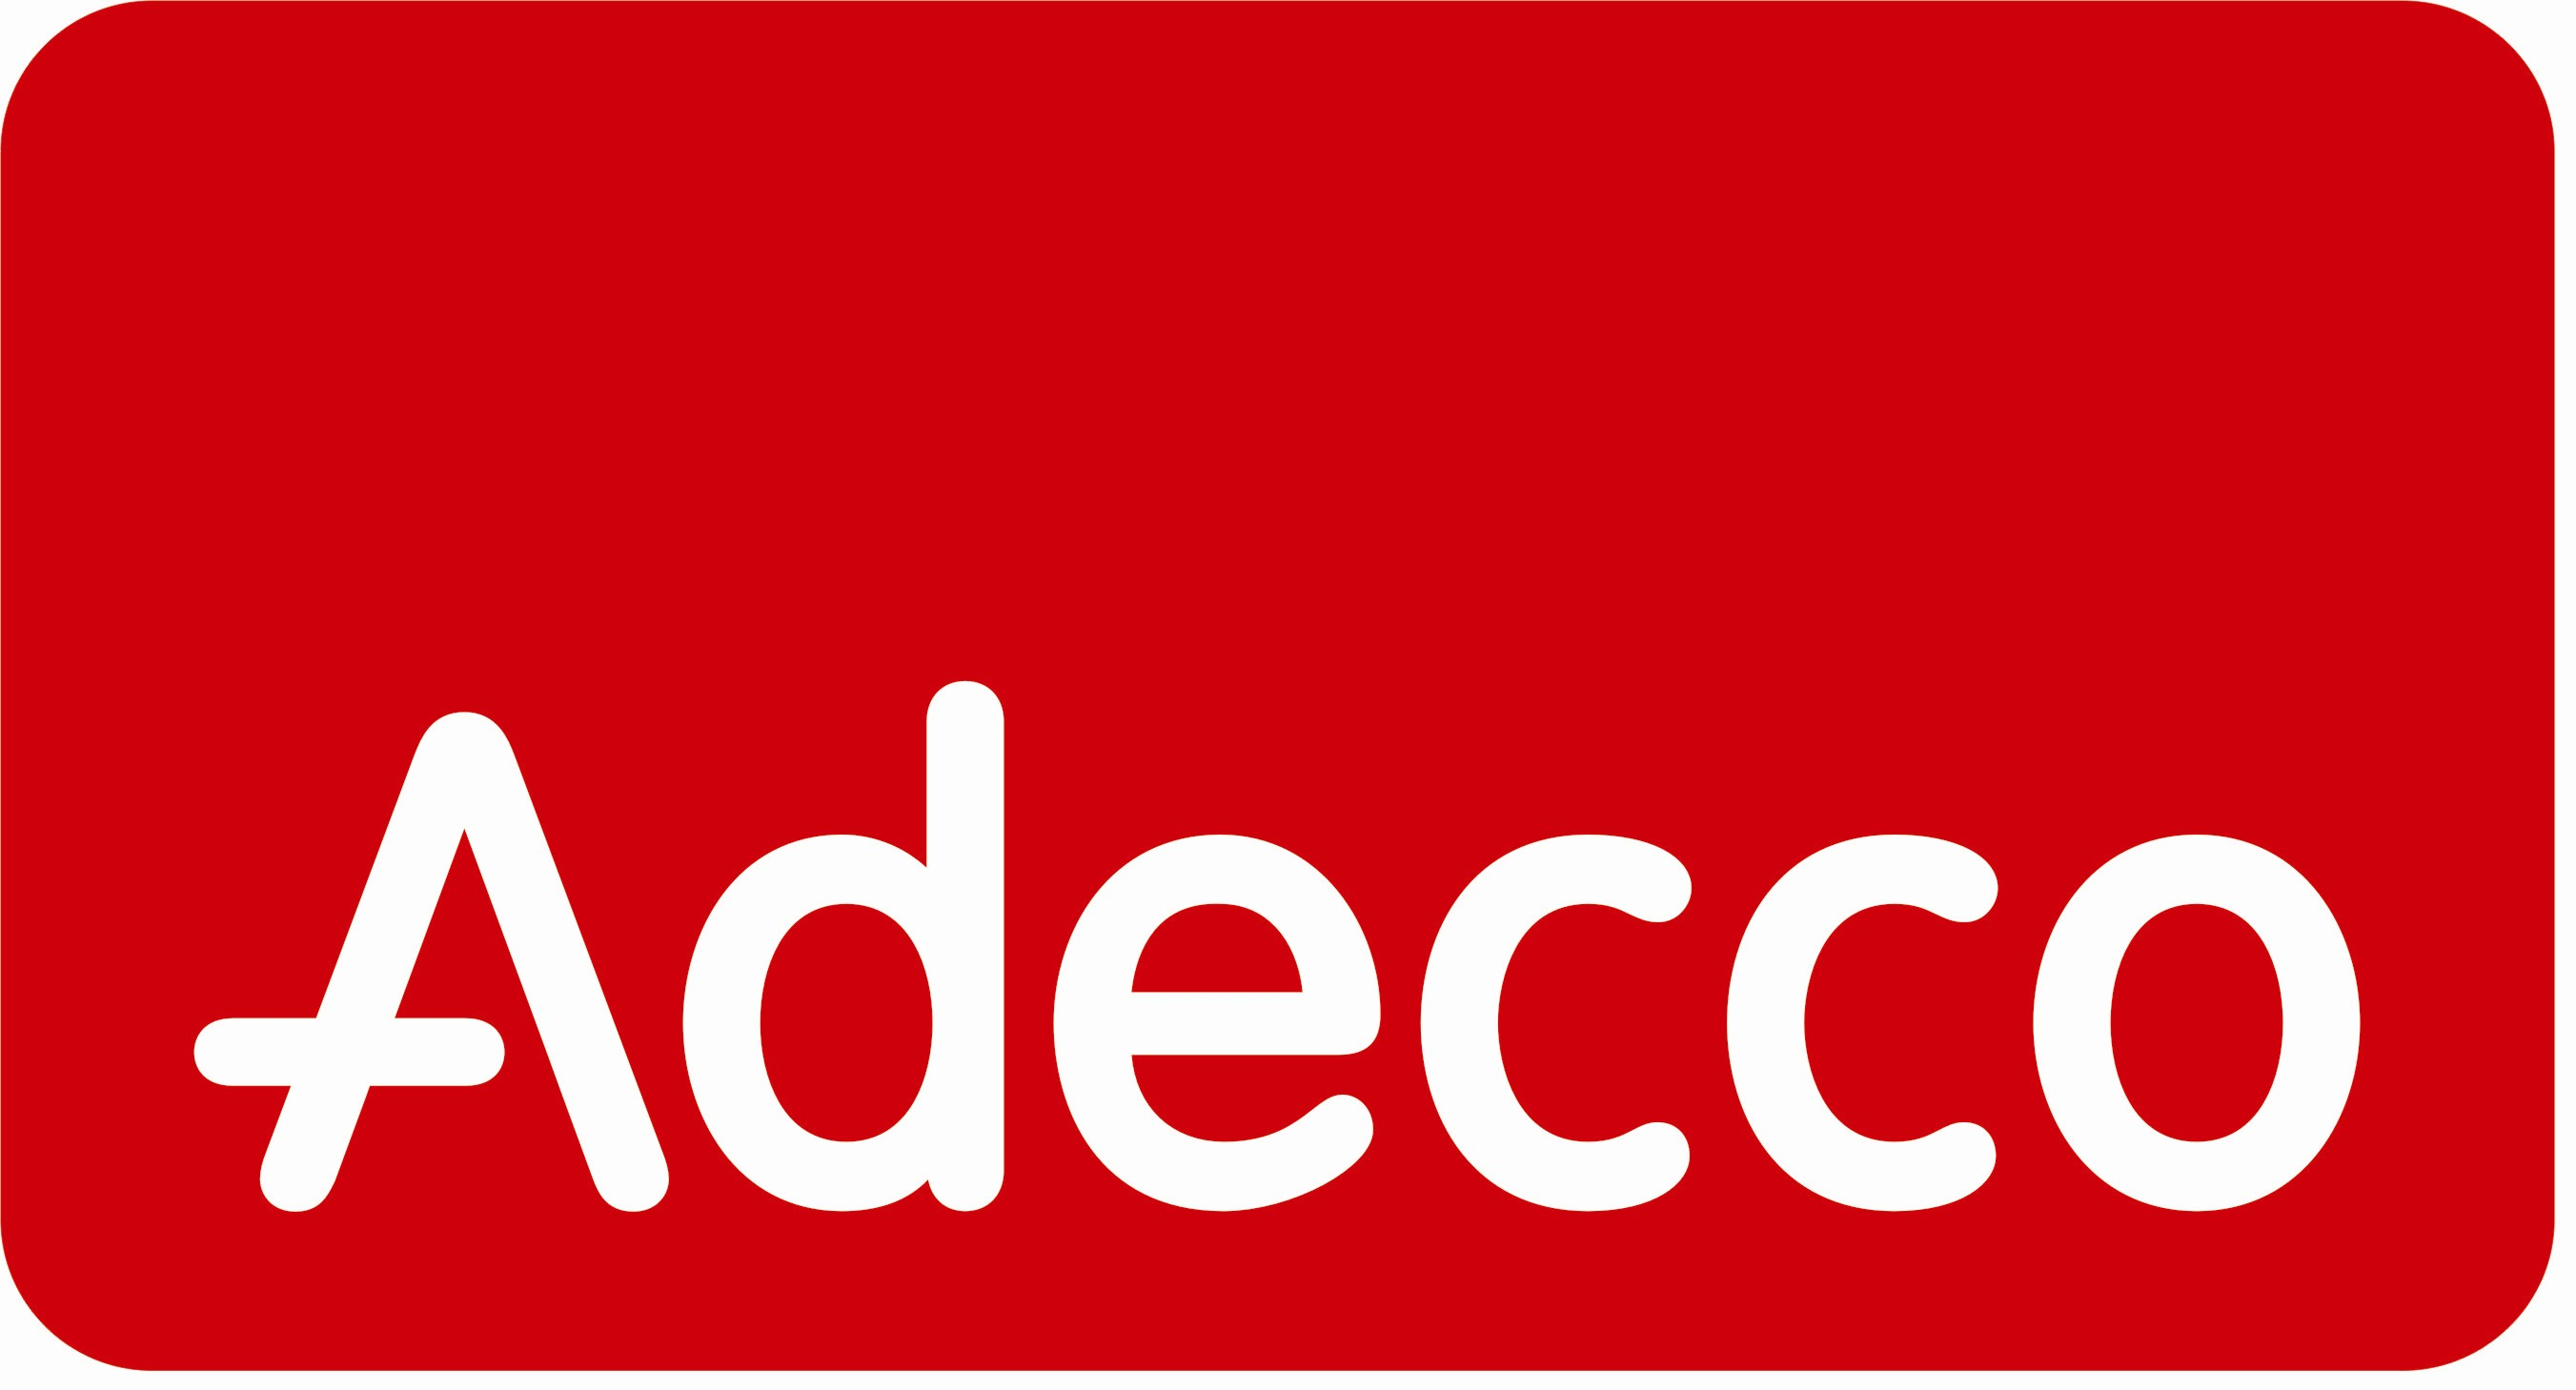 Adecco India Pvt Ltd Image